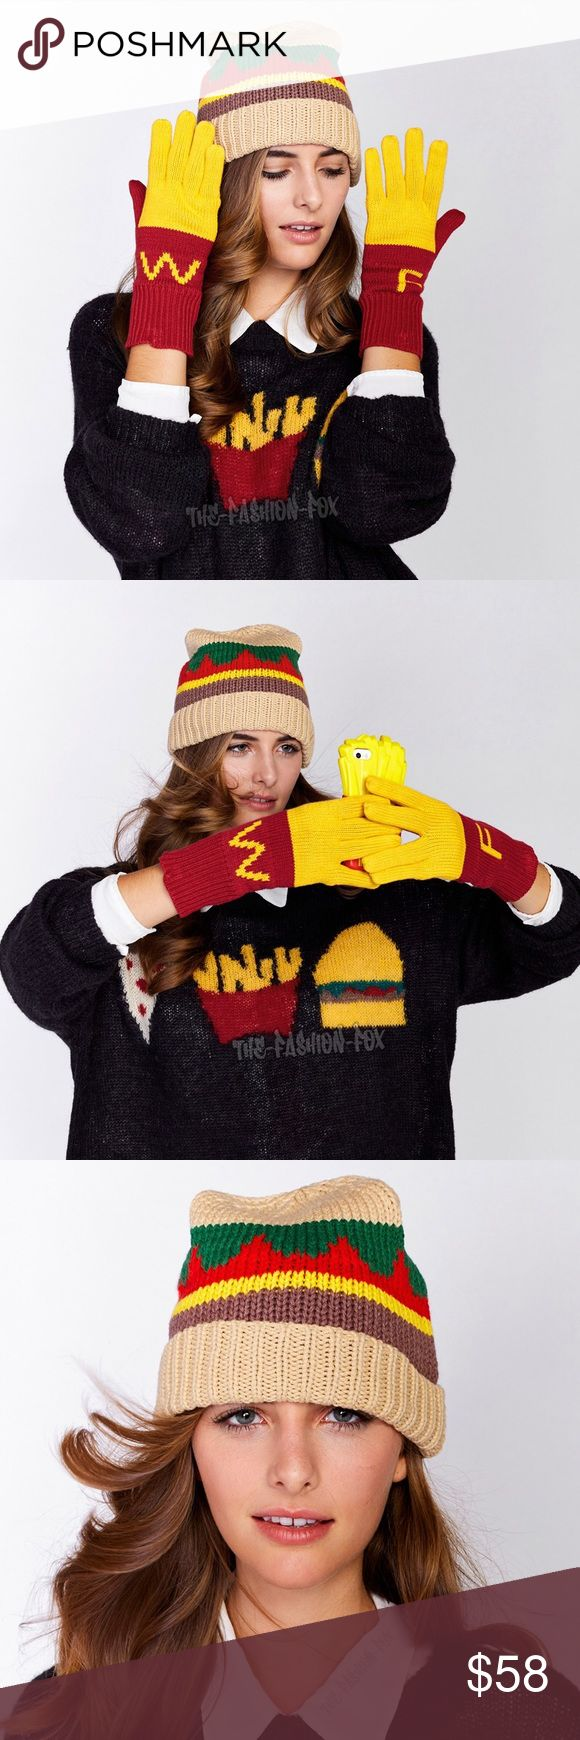 Wildfox Fast Food Burger Beanie + Fries Gloves Set Welcome! ♥ You are viewing a New Wildfox Couture Fast Food Super Size Burger Knit Beanie Hat + Super Fries Finger Food Gloves Set. Keep yourself stylishly warm in this fast food inspired beanie hat and gloves set by Wildfox. The knitted beanie features colorful embellished stripes and a ribbed, folded brim. The plush two-tone knit gloves have 'F' letter detailing on one hand and 'W' letter detailing on the other. Items are sealed in retail…